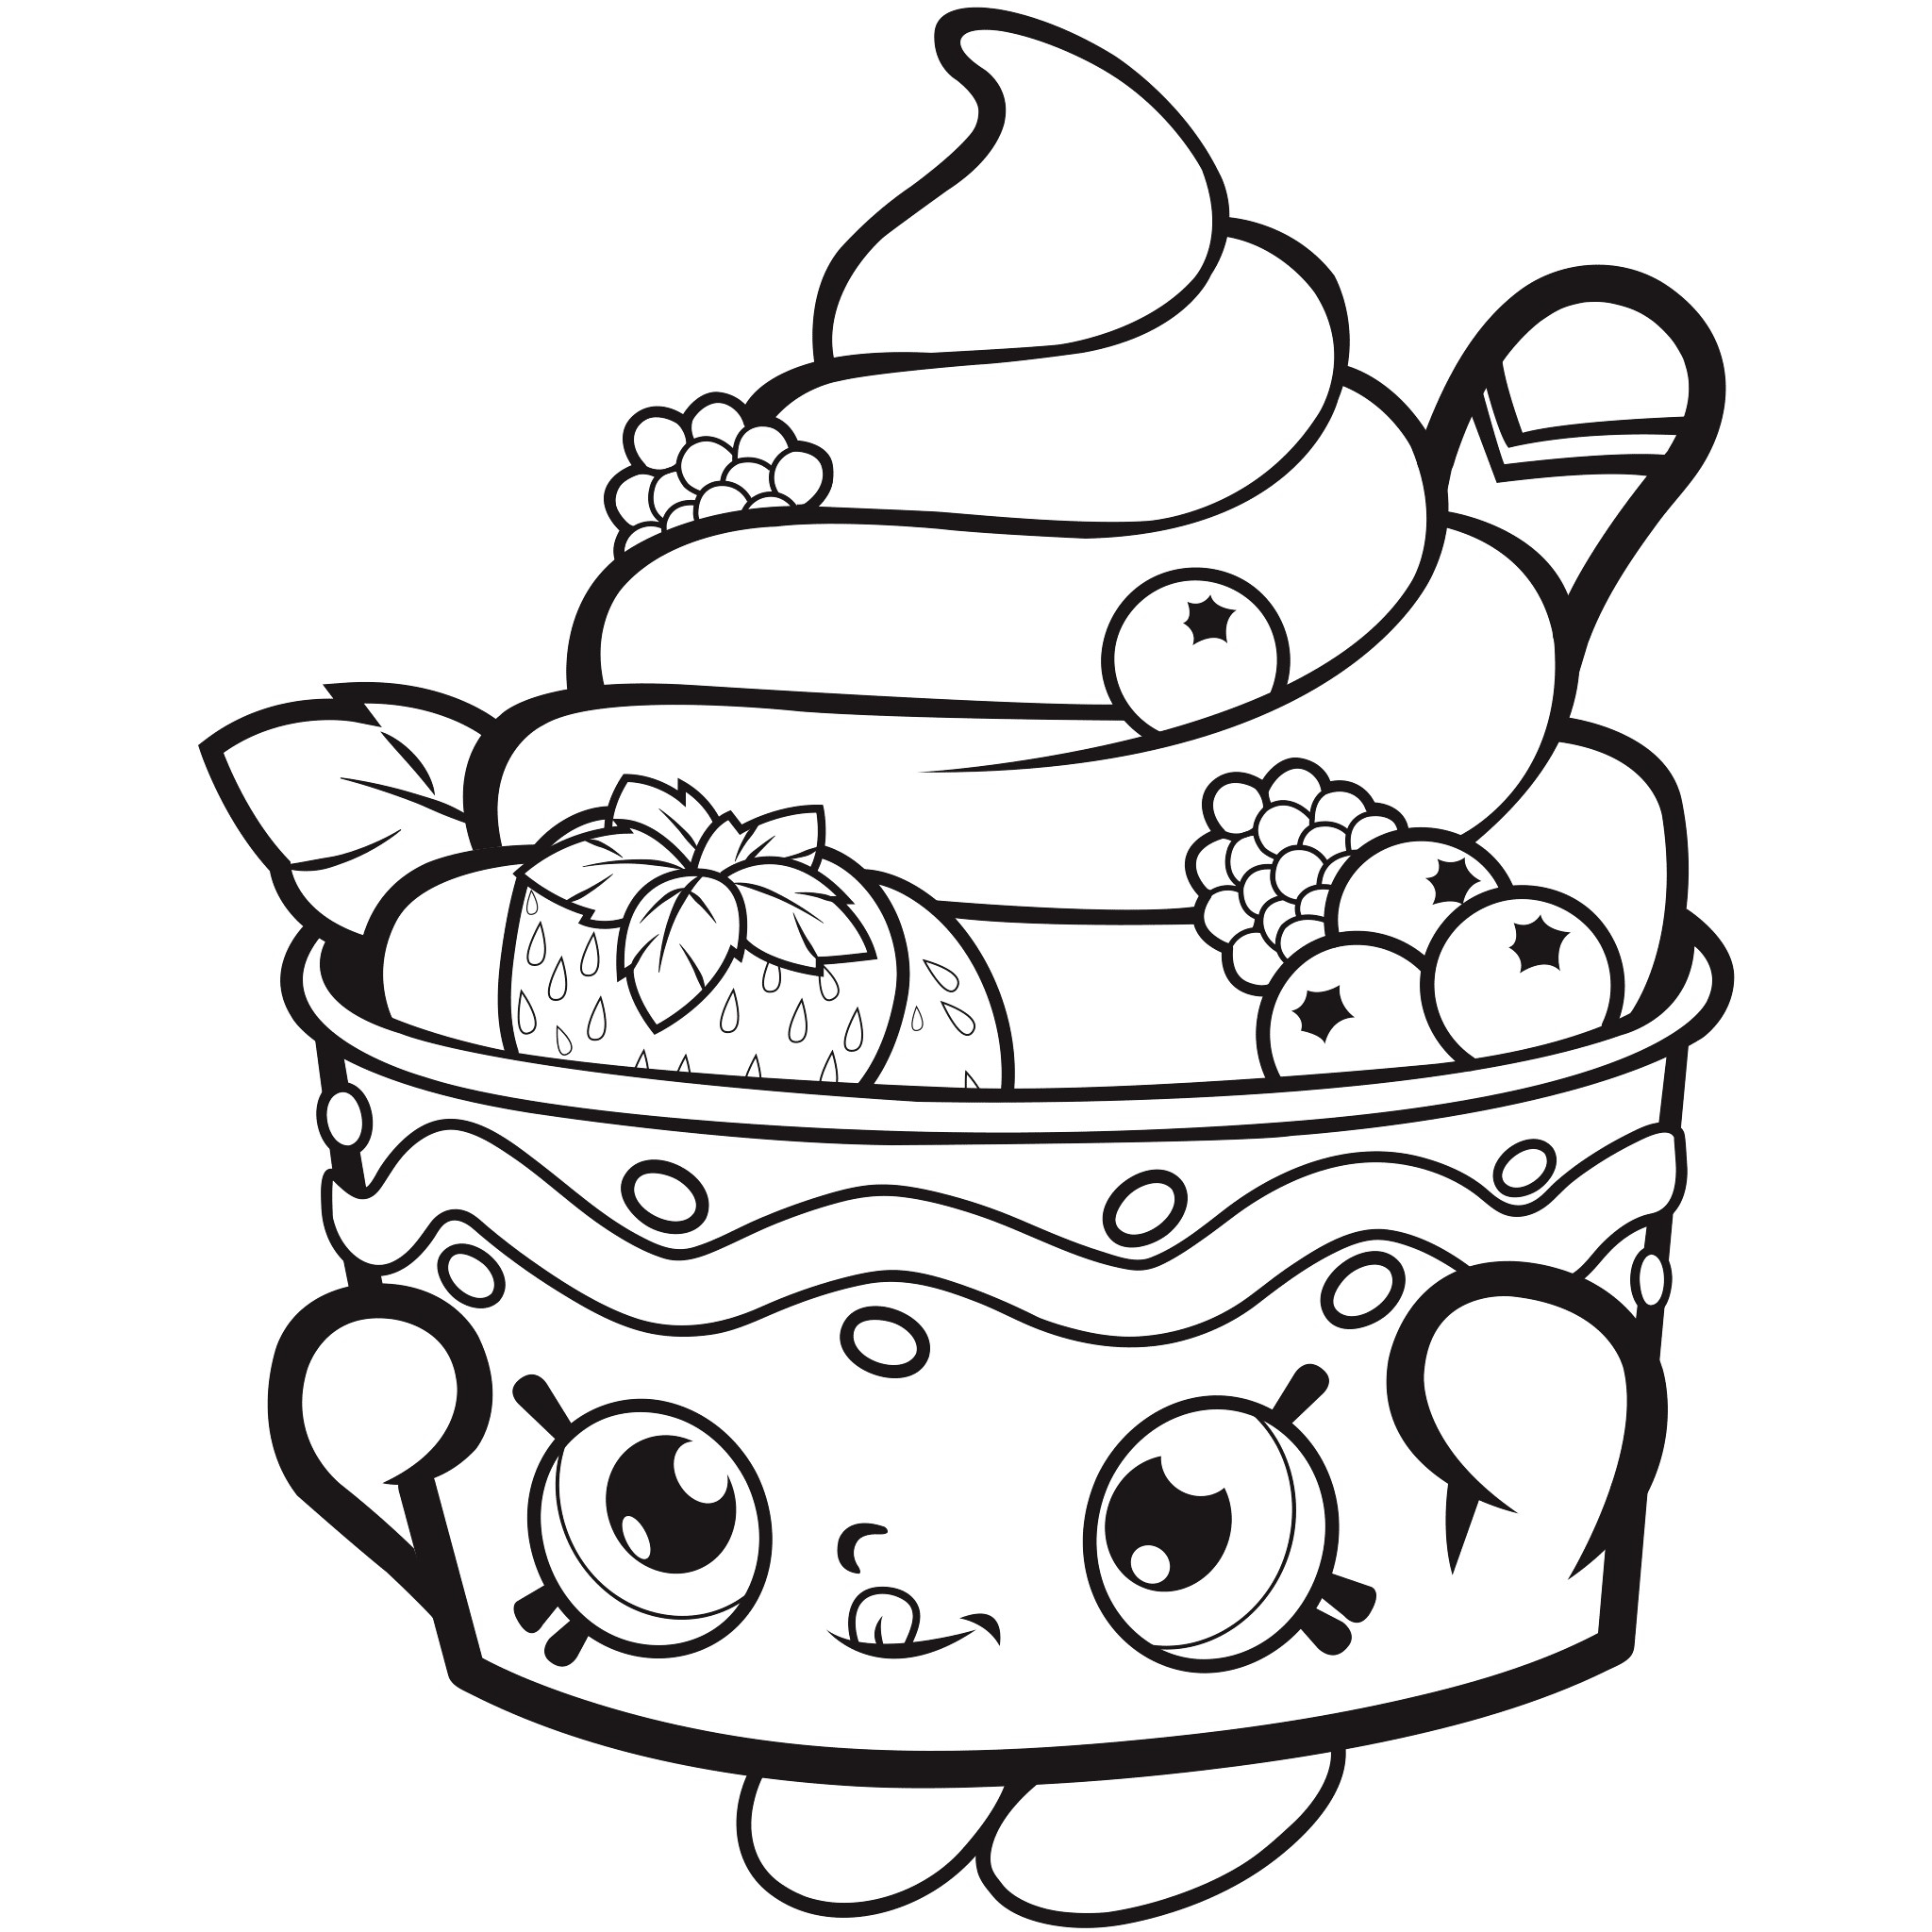 Shopkins Coloring Pages Printable   Free Coloring Sheets